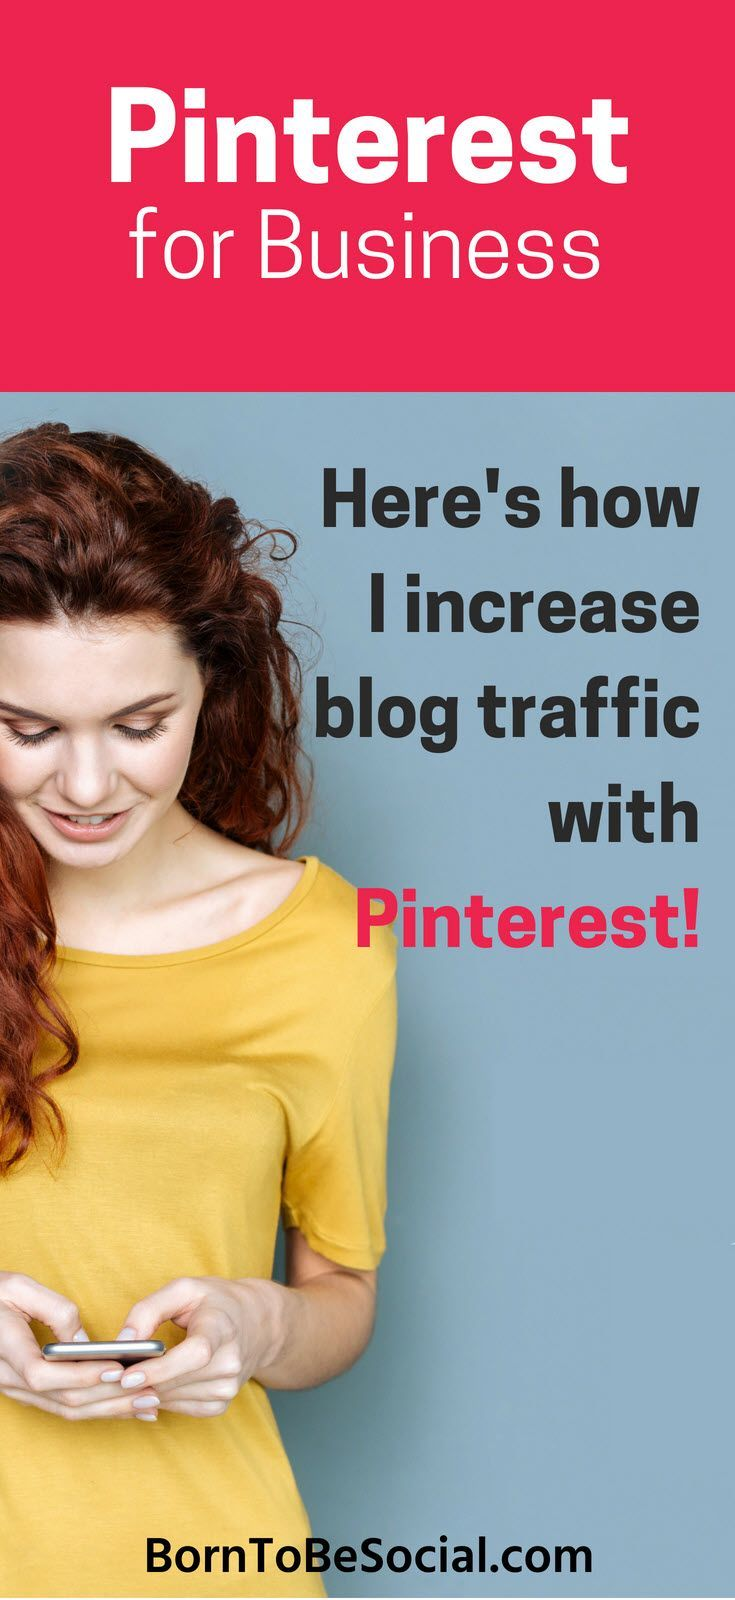 How to increase blog traffic with Pinterest – Here's how to use Pinterest to drive traffic to your blog.  Increase your business visibility and number of visitors to your #blog and your website! | Mary Lumley | #BornToBeSocial #Pinterest Marketing & Consulting